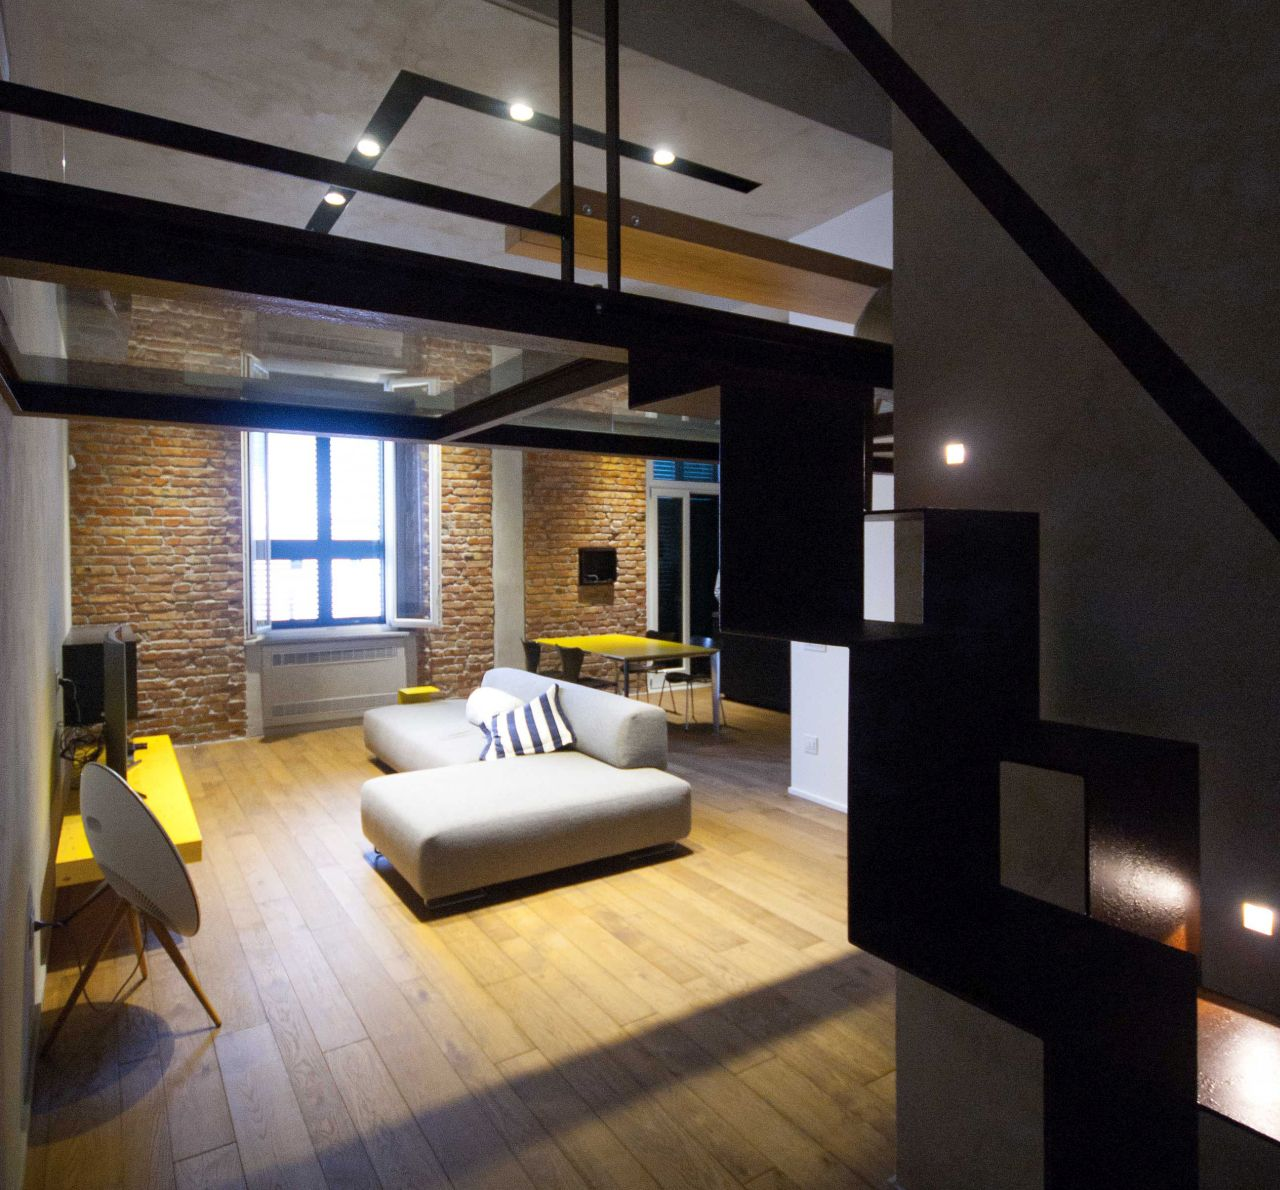 Renovation: seaside loft apartment